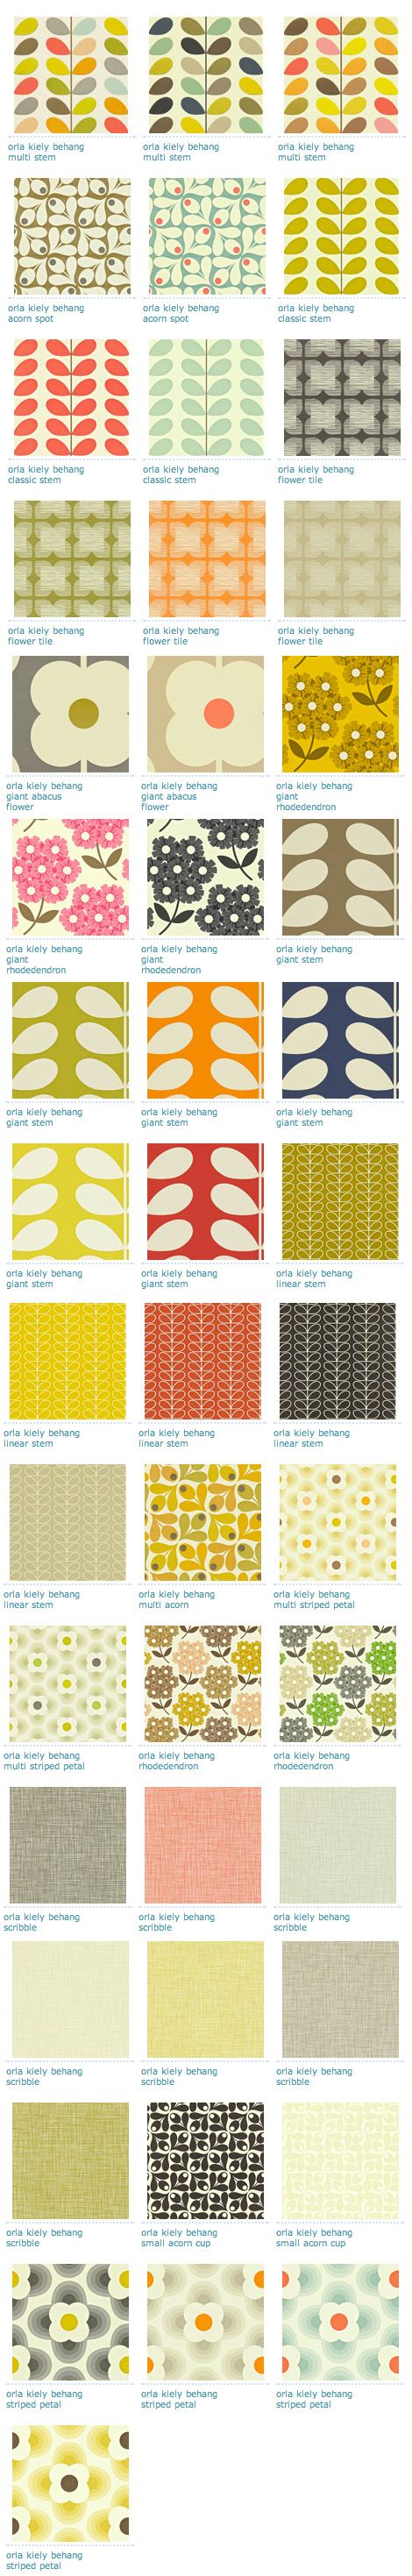 Orla-kiely-wallpaper-belgie